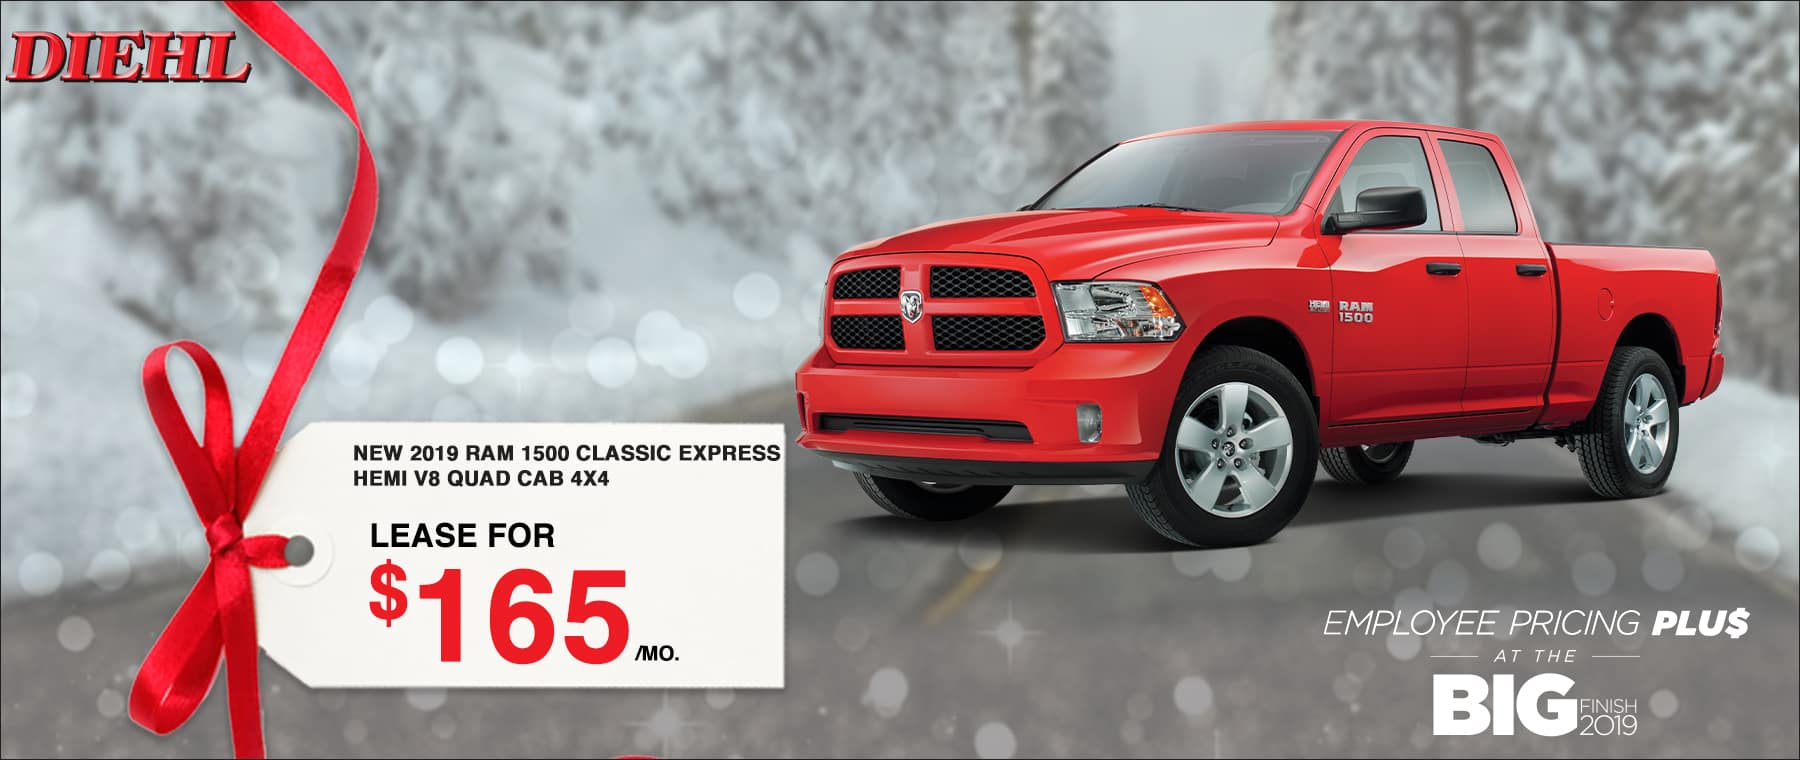 B4219_2019RAM1500CLASSIC Big finish event employee pricing plus Chrysler dodge jeep ram diehl of Robinson pa diehl automotive lease special buy now savings discount